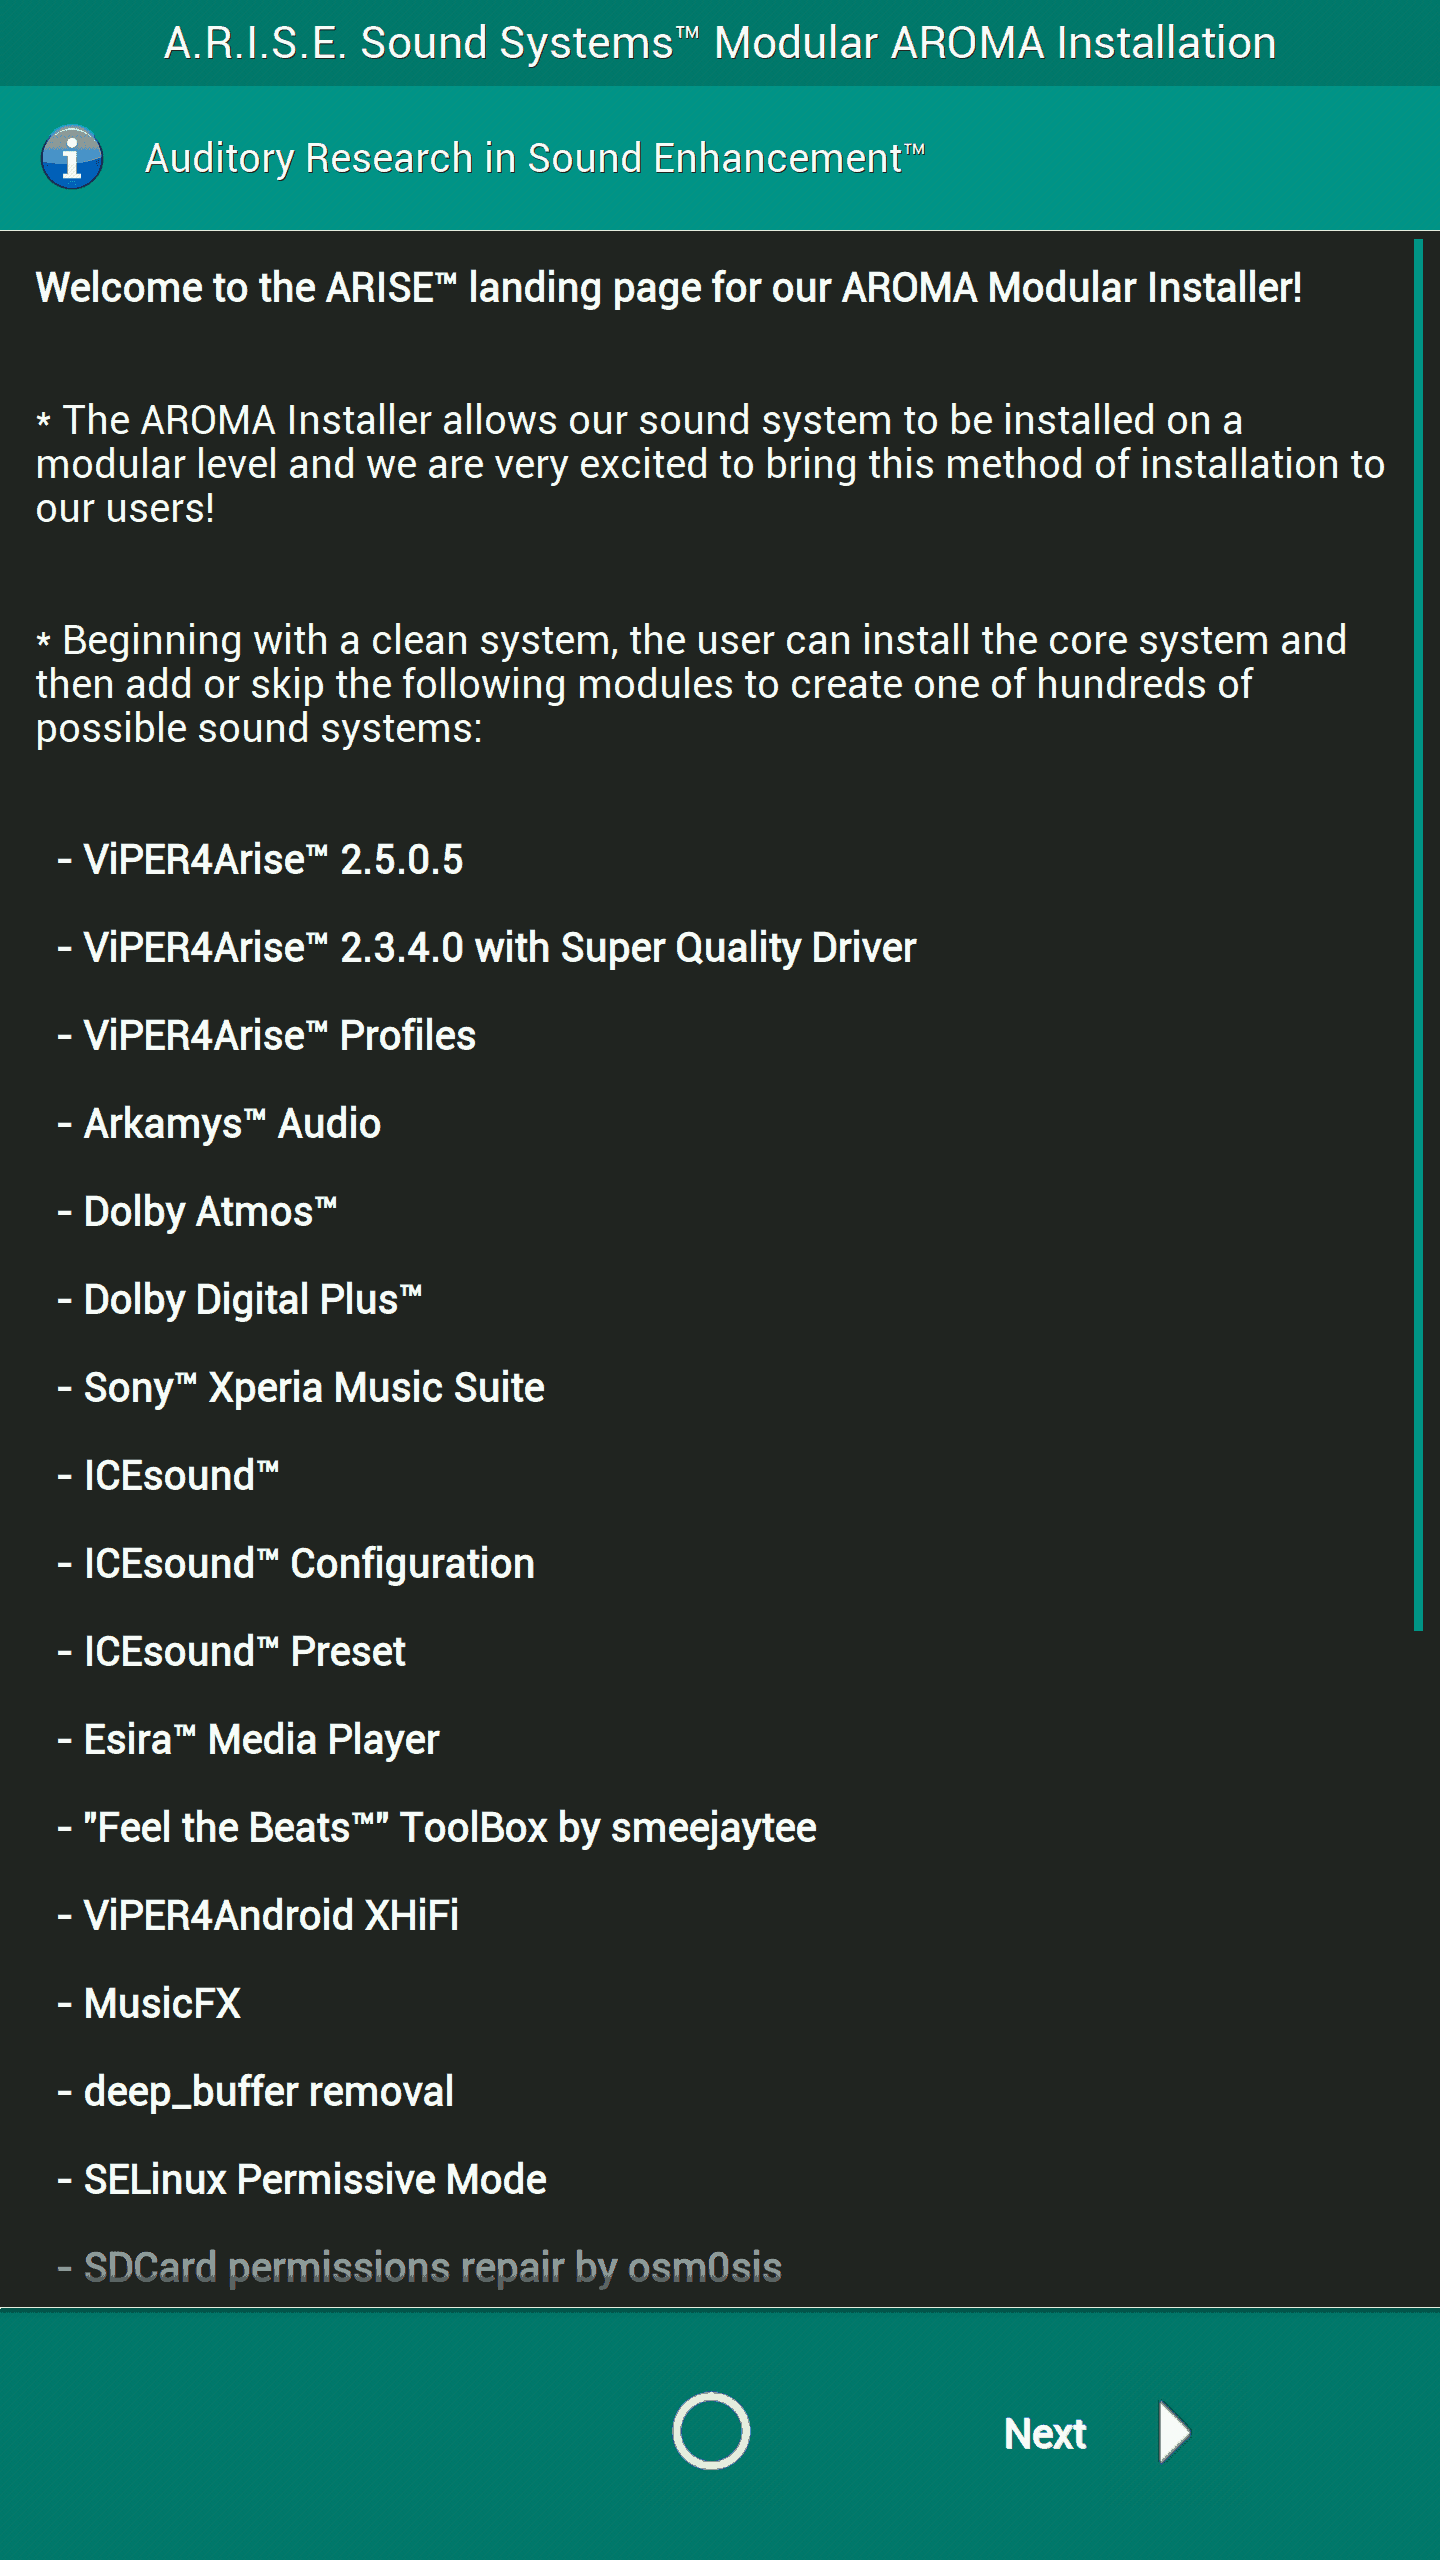 Install Viper4Android on Android 7 0 with ARISE Sound Systems